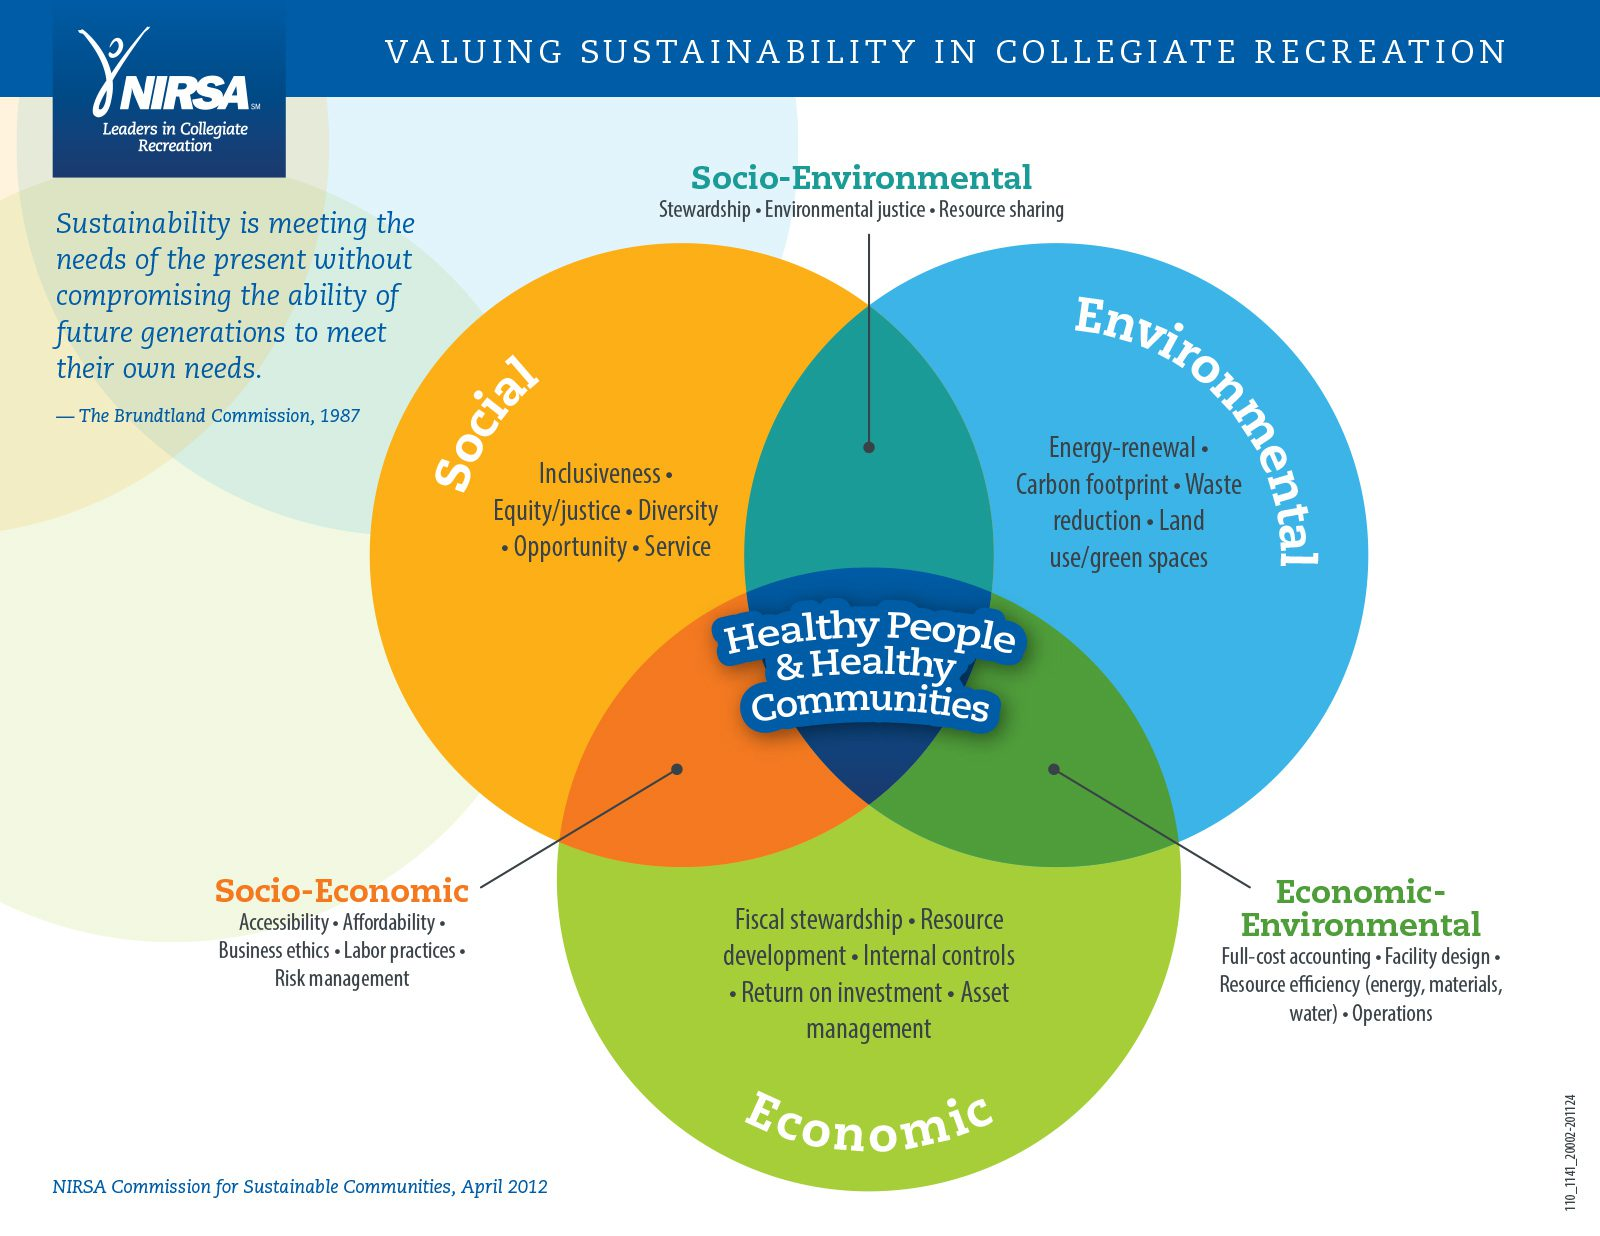 NIRSA Valuing Sustainability in Collegiate Recreation